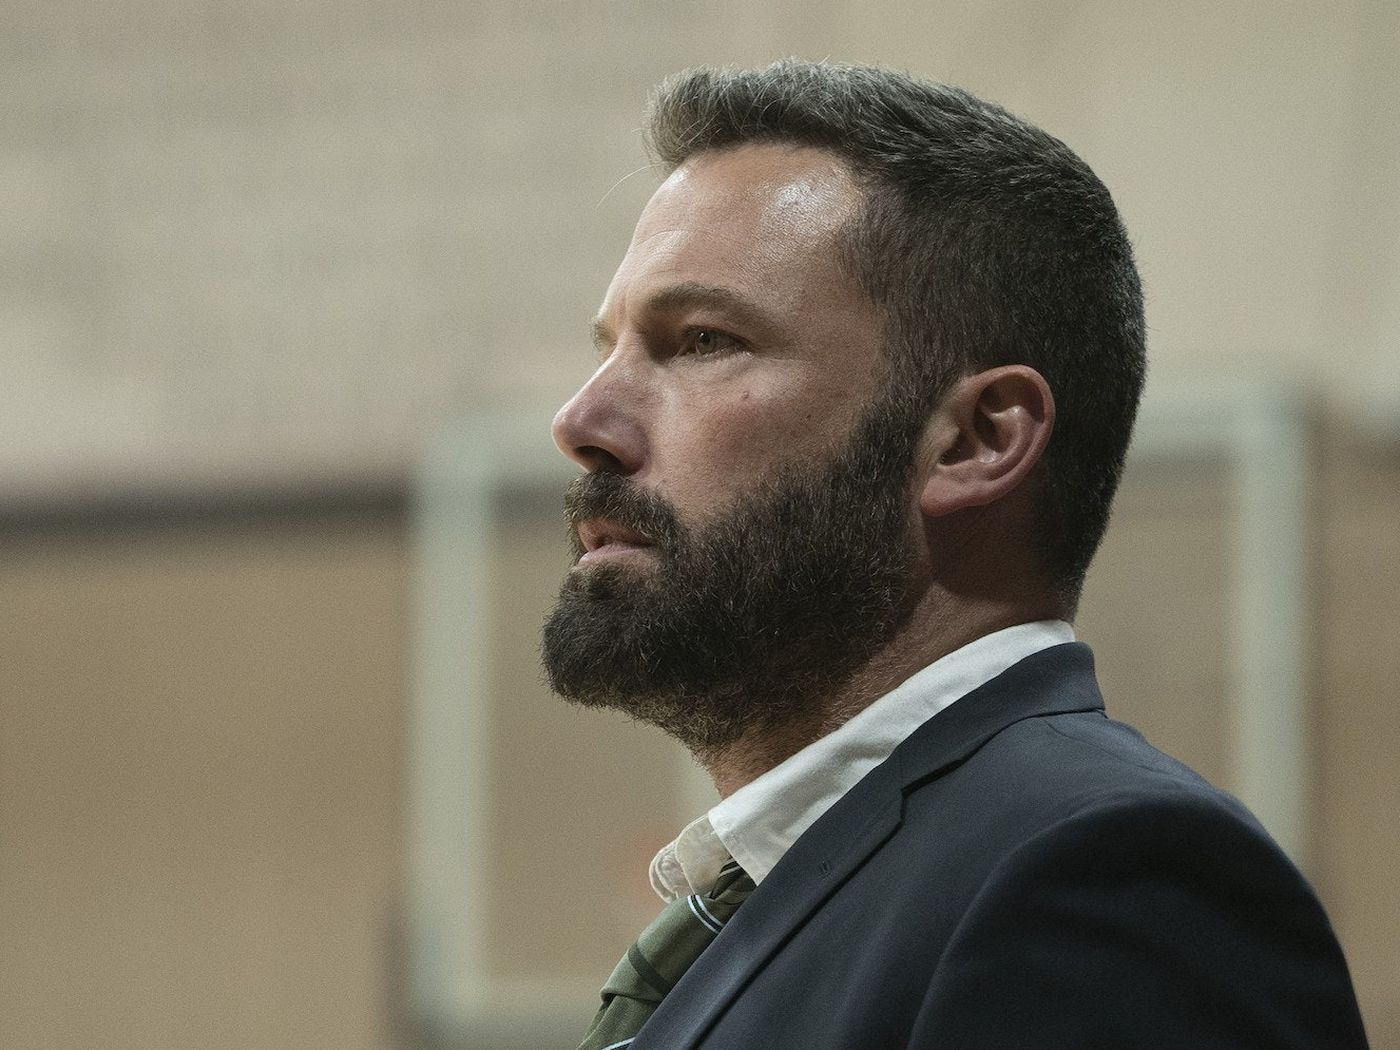 The Way Back review Ben Affleck shines as a grieving alcoholic 1400x1050